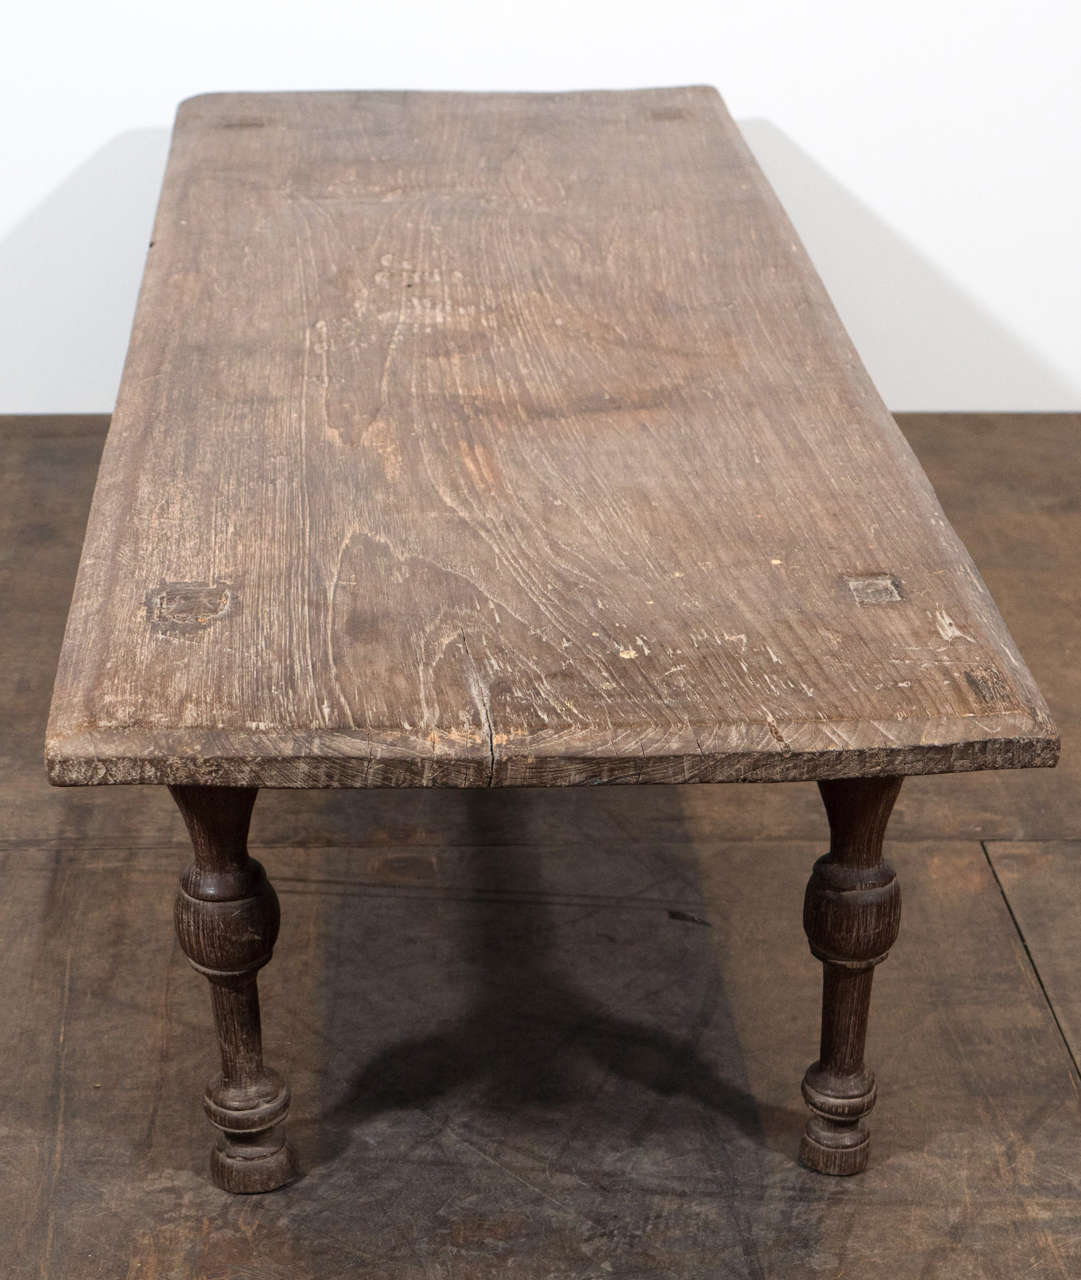 Antique Teak Coffee Table: Antique Single Teak Slab-Top Coffee Table At 1stdibs